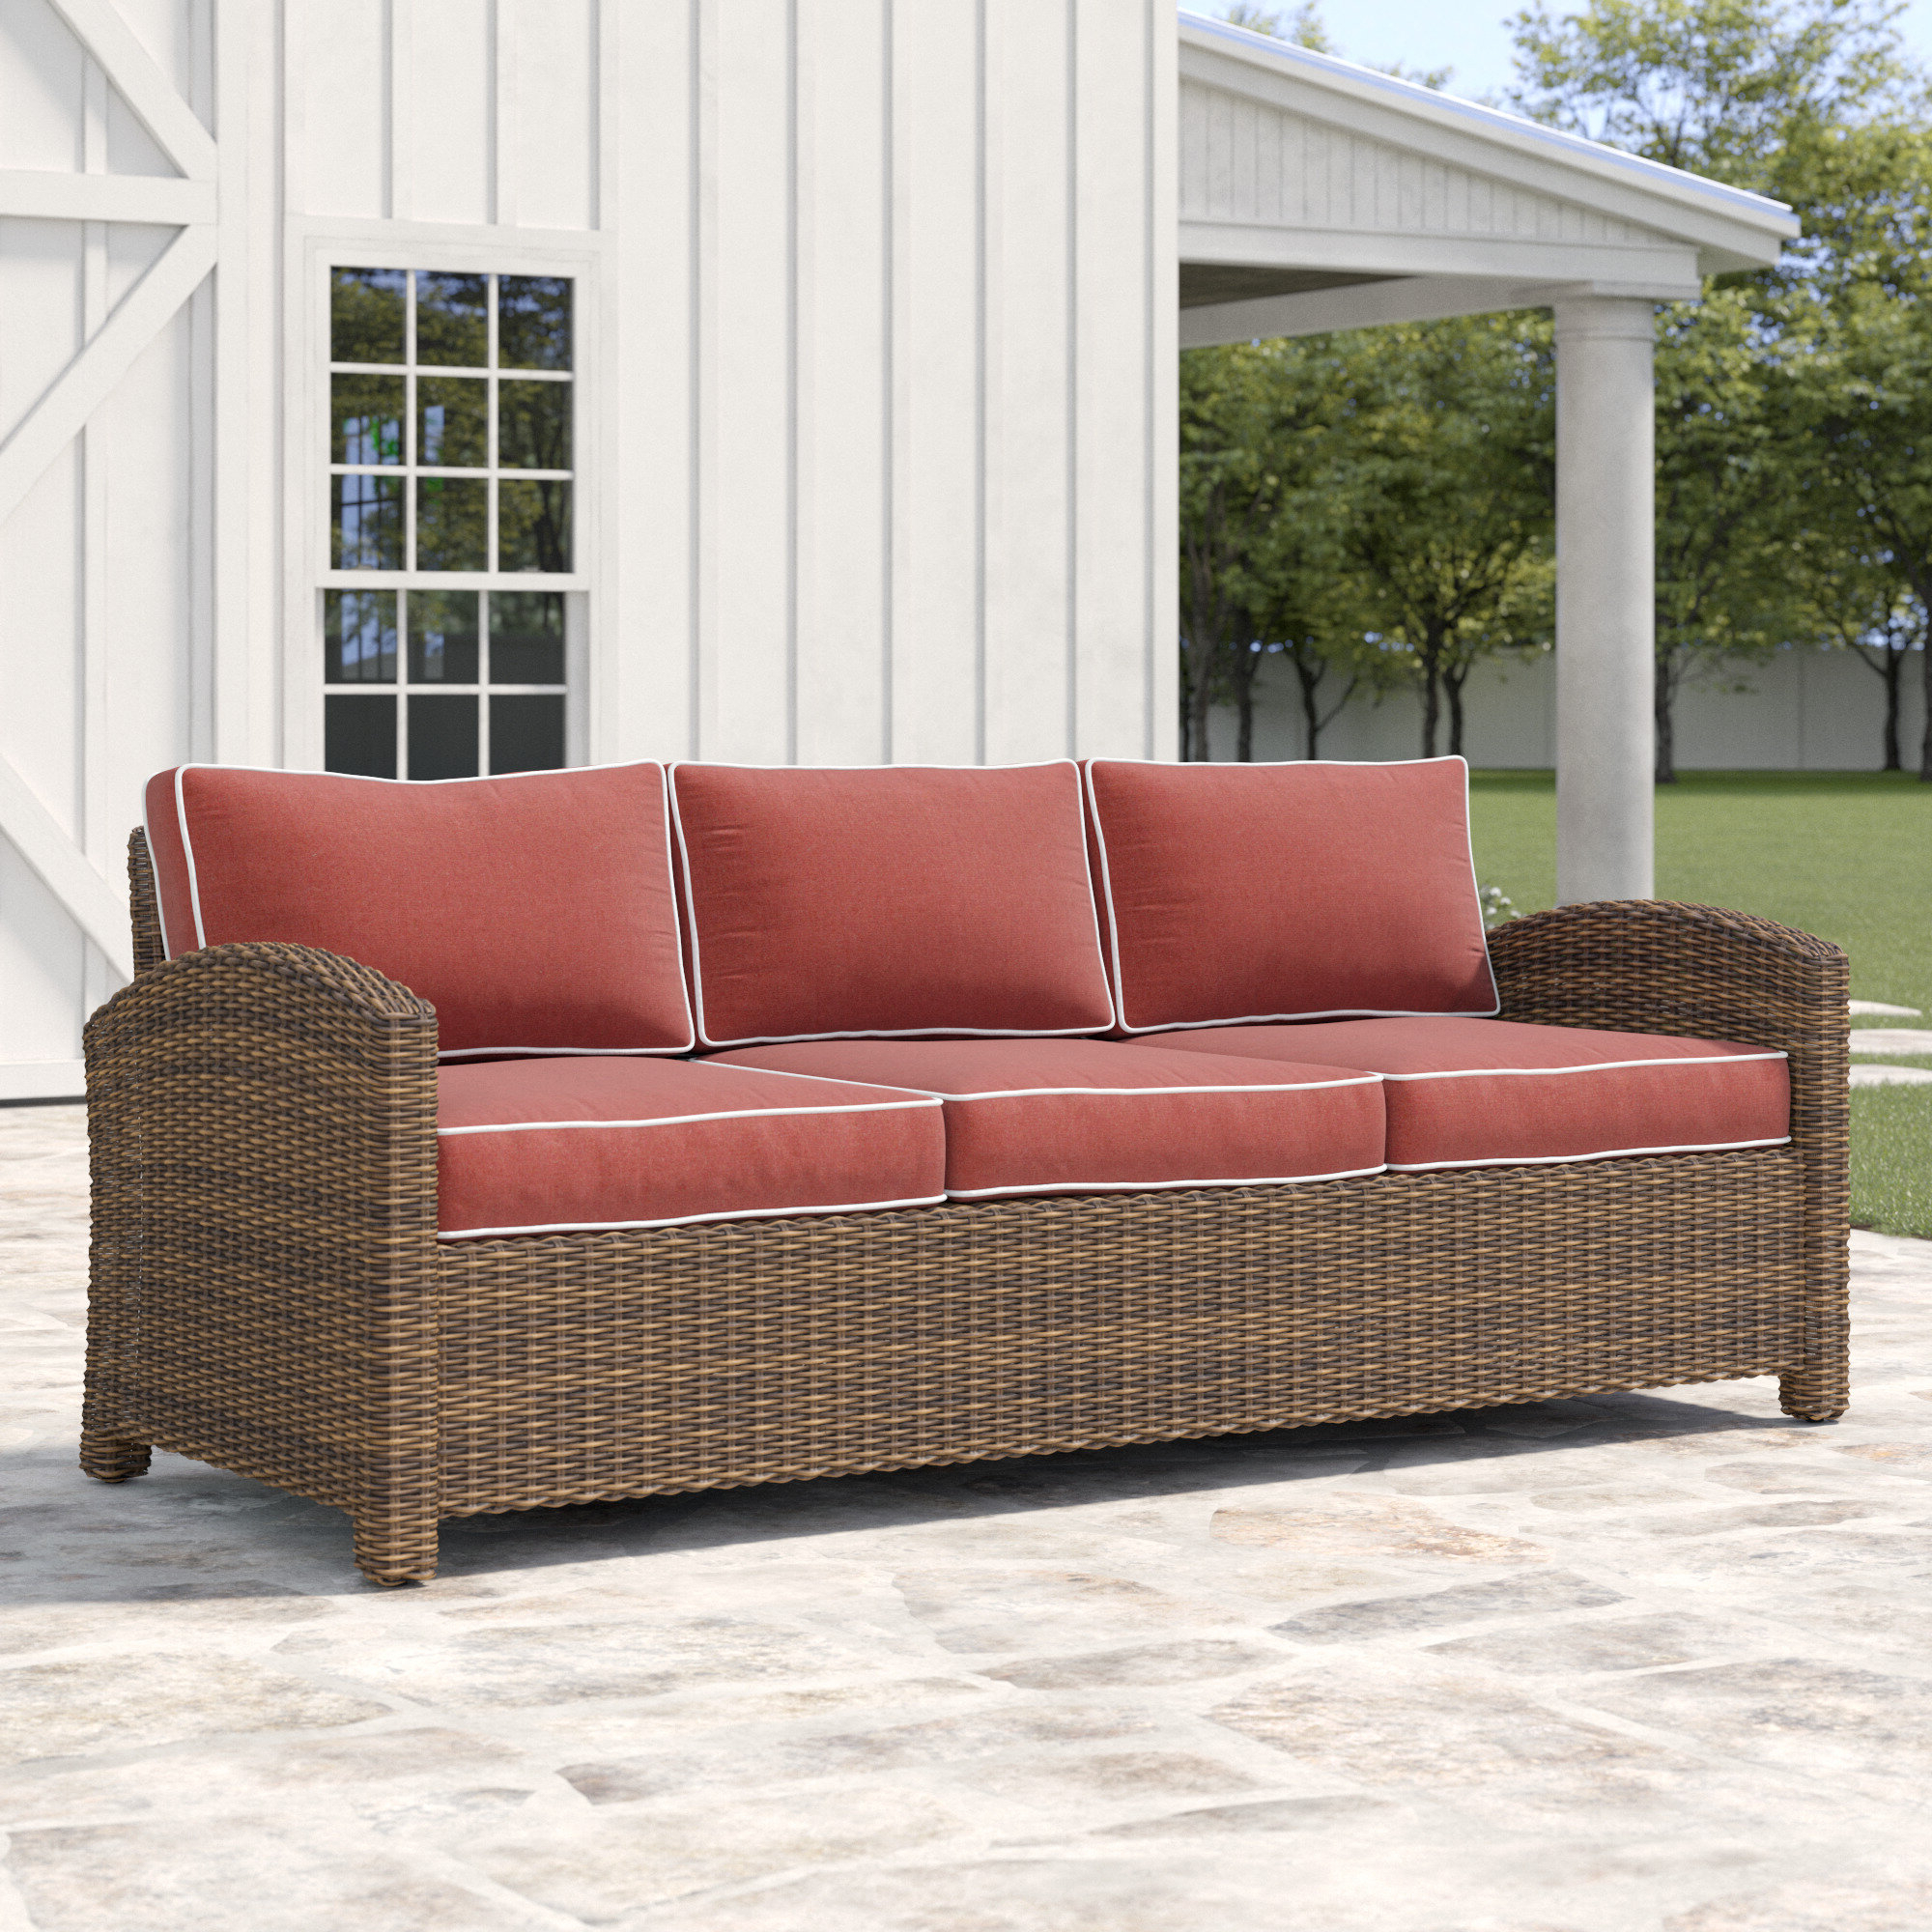 Most Recent Lawson Patio Sofa With Cushions Inside Lawson Patio Sofas With Cushions (Gallery 2 of 25)